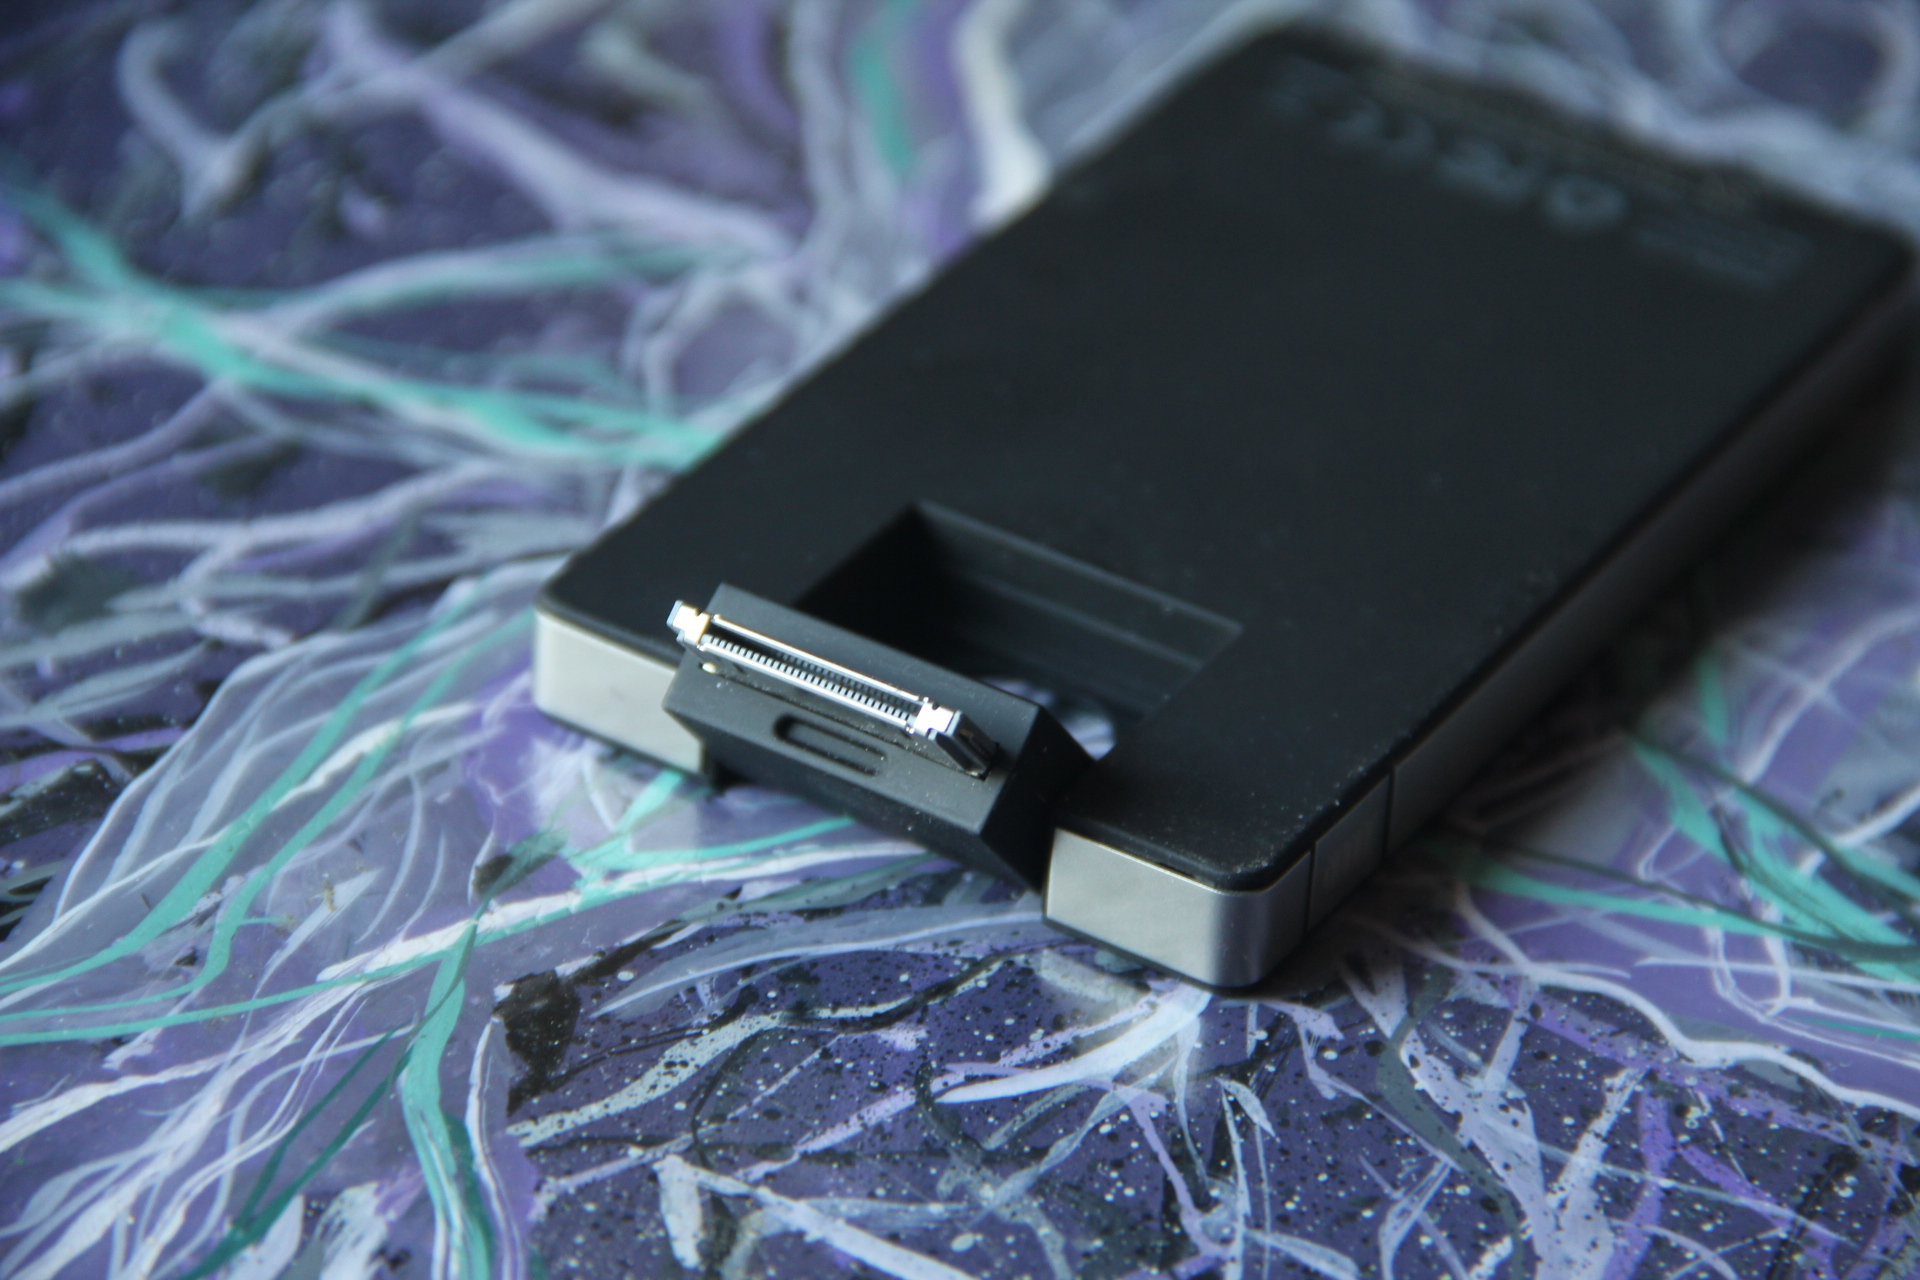 Mophie's Juice Pack Boost is puny but packs a punch